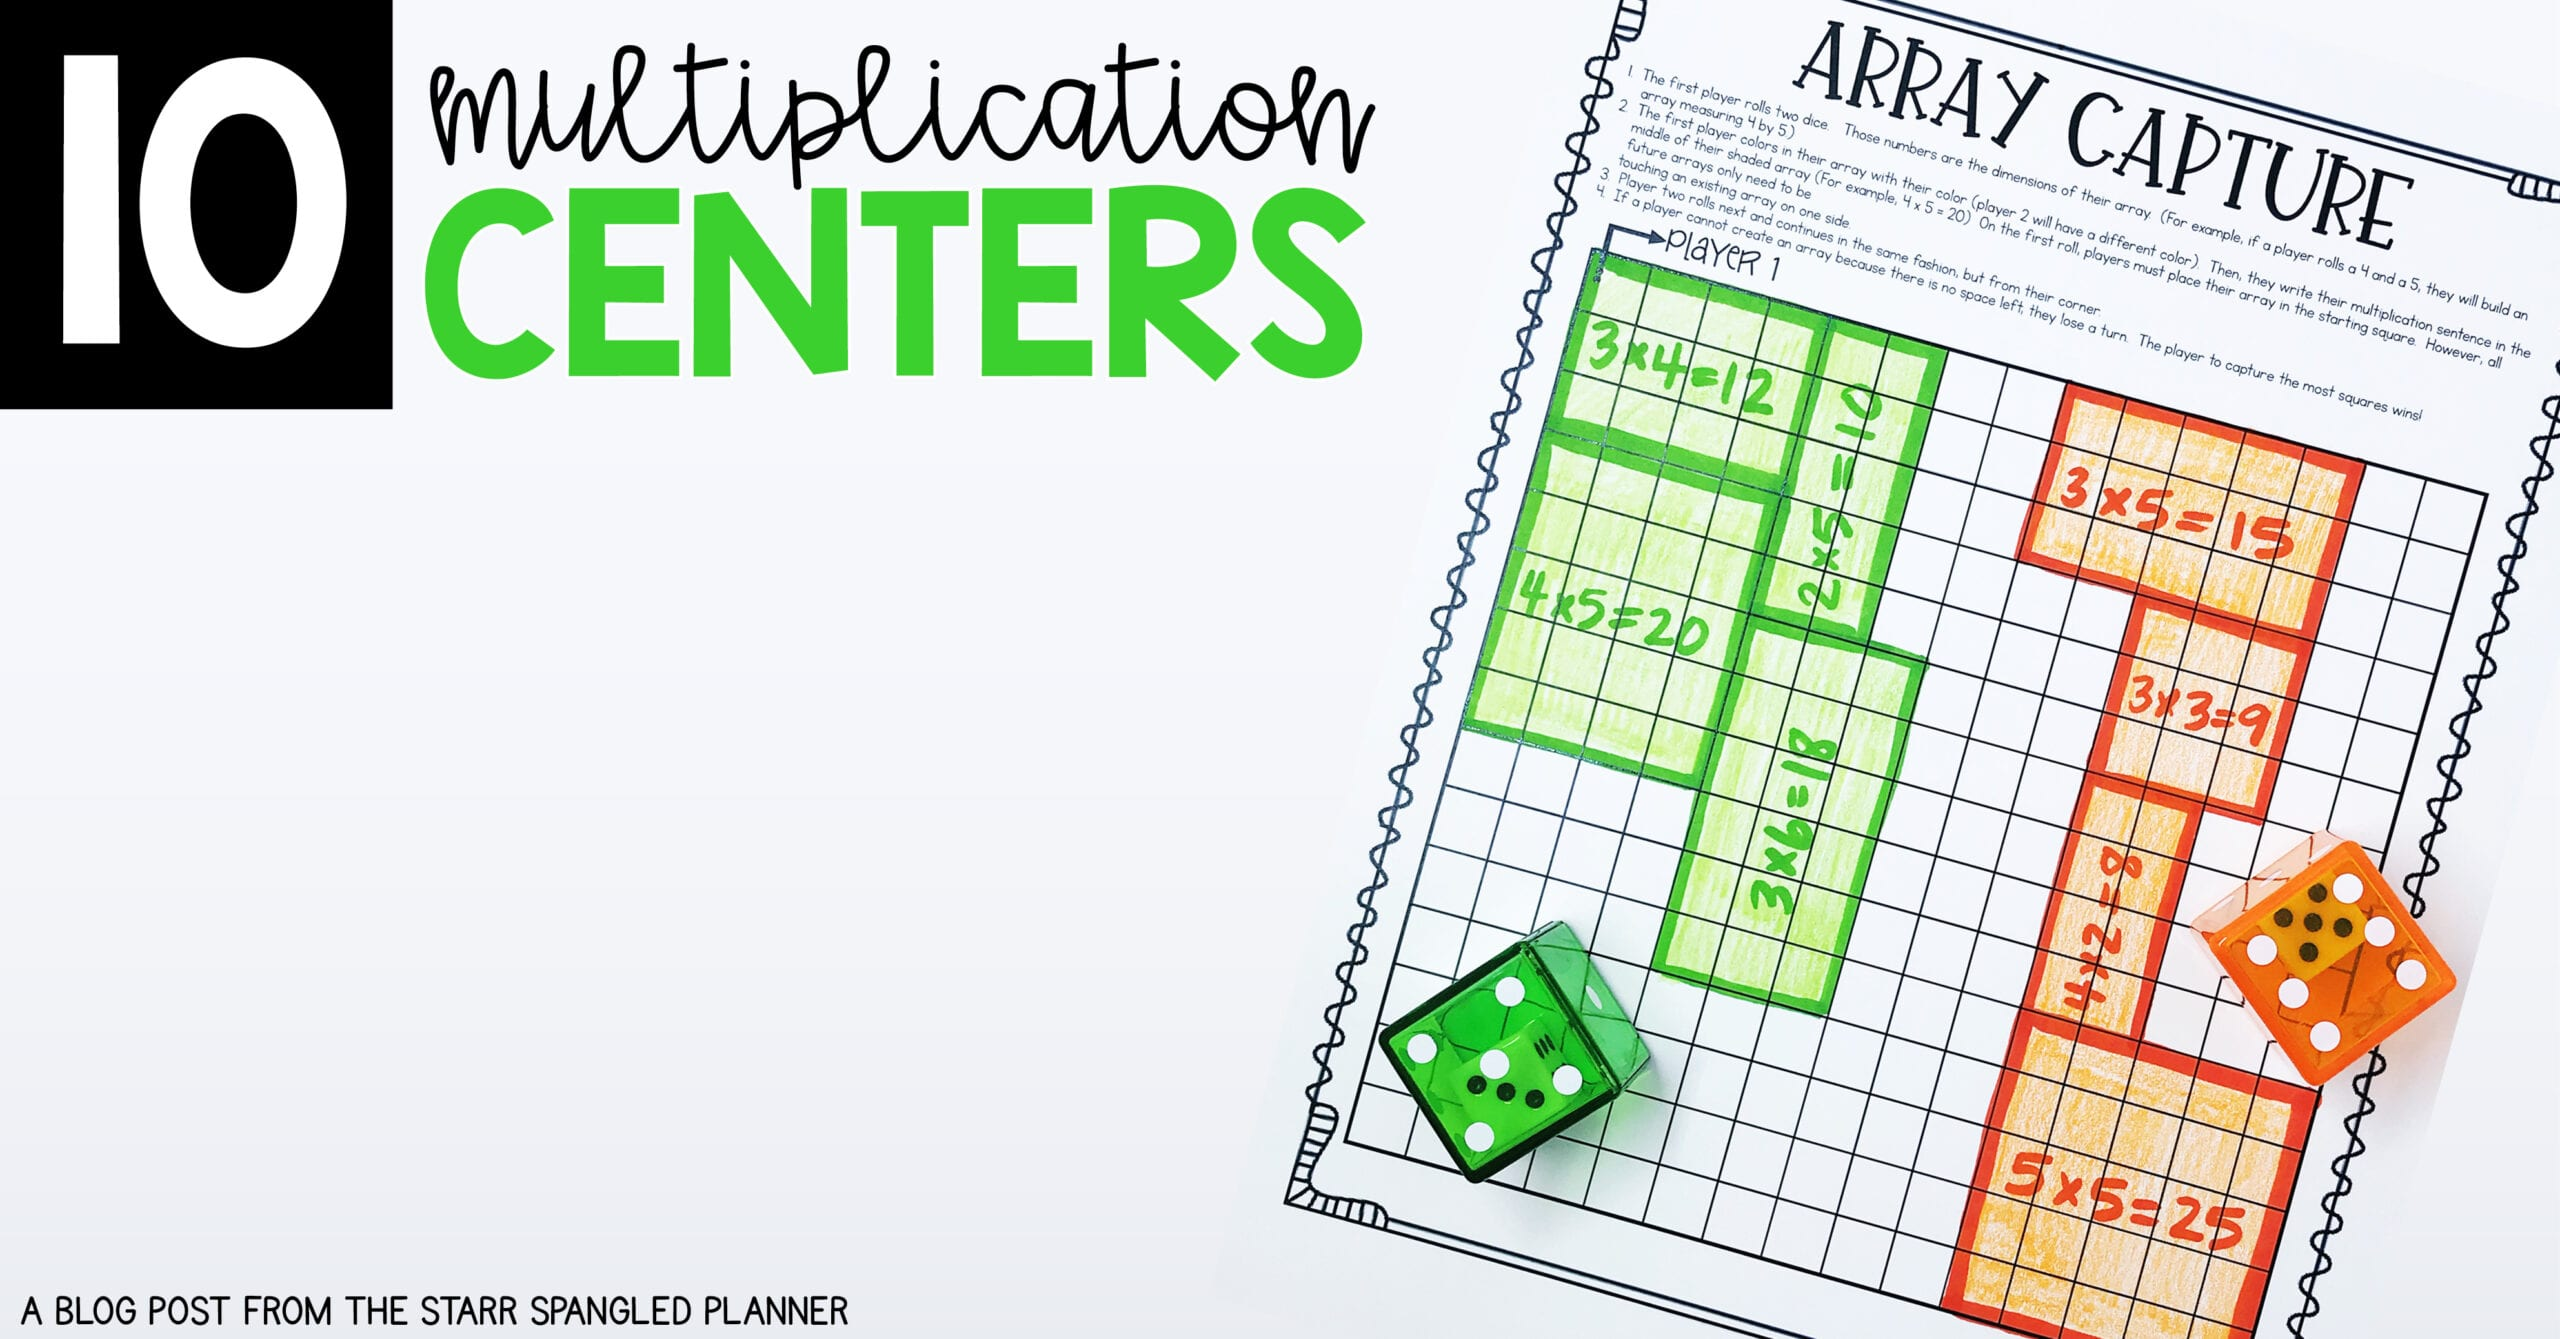 photo about Printable Multiplication Games for 3rd Grade called 10 Multiplication Math Heart Online games Functions